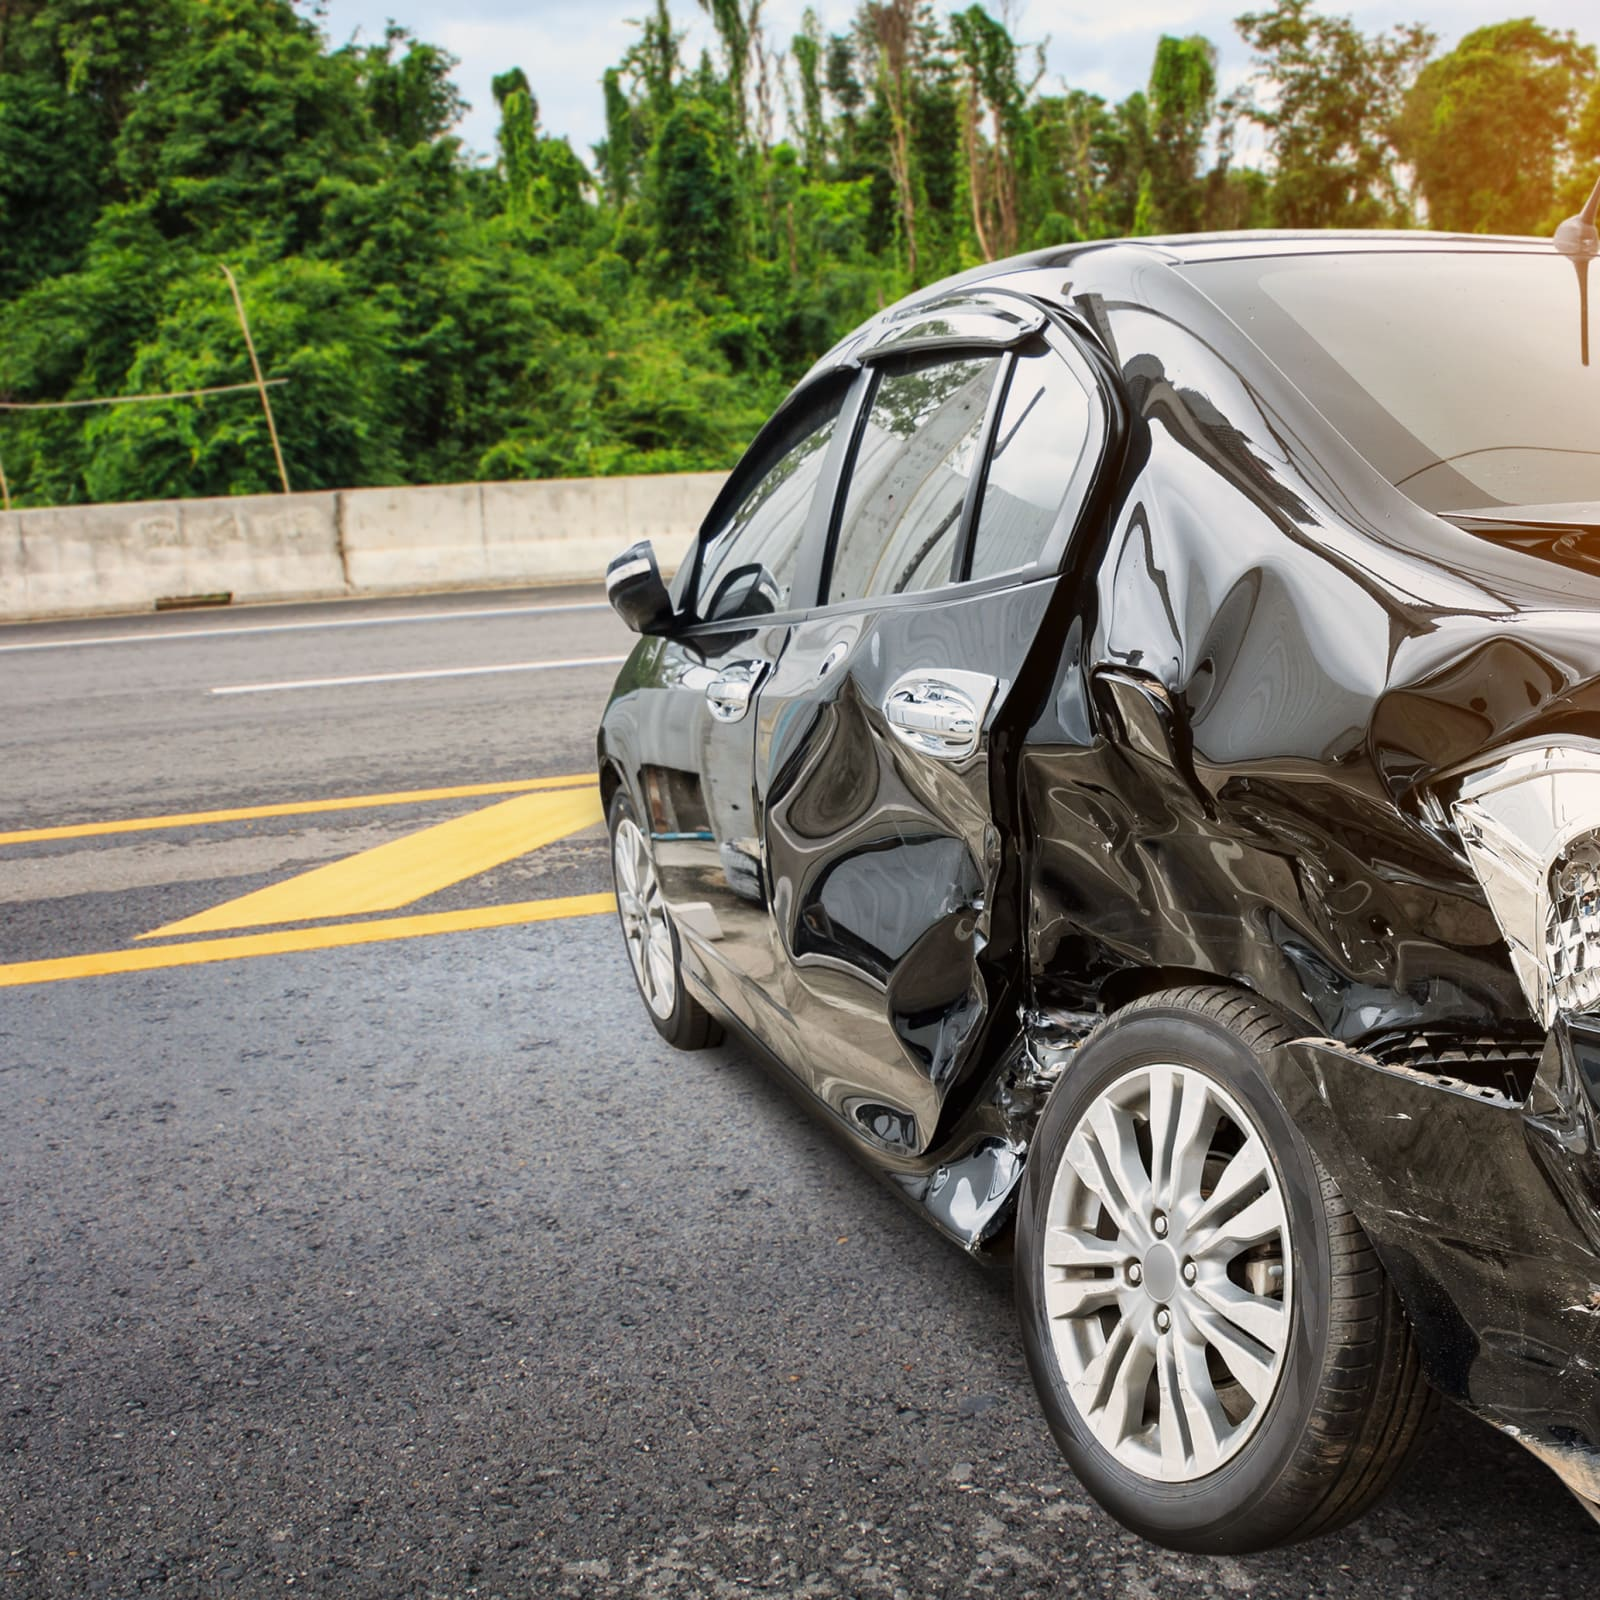 Does Car Insurance Cover an Ambulance Ride? How Much Will it Cost